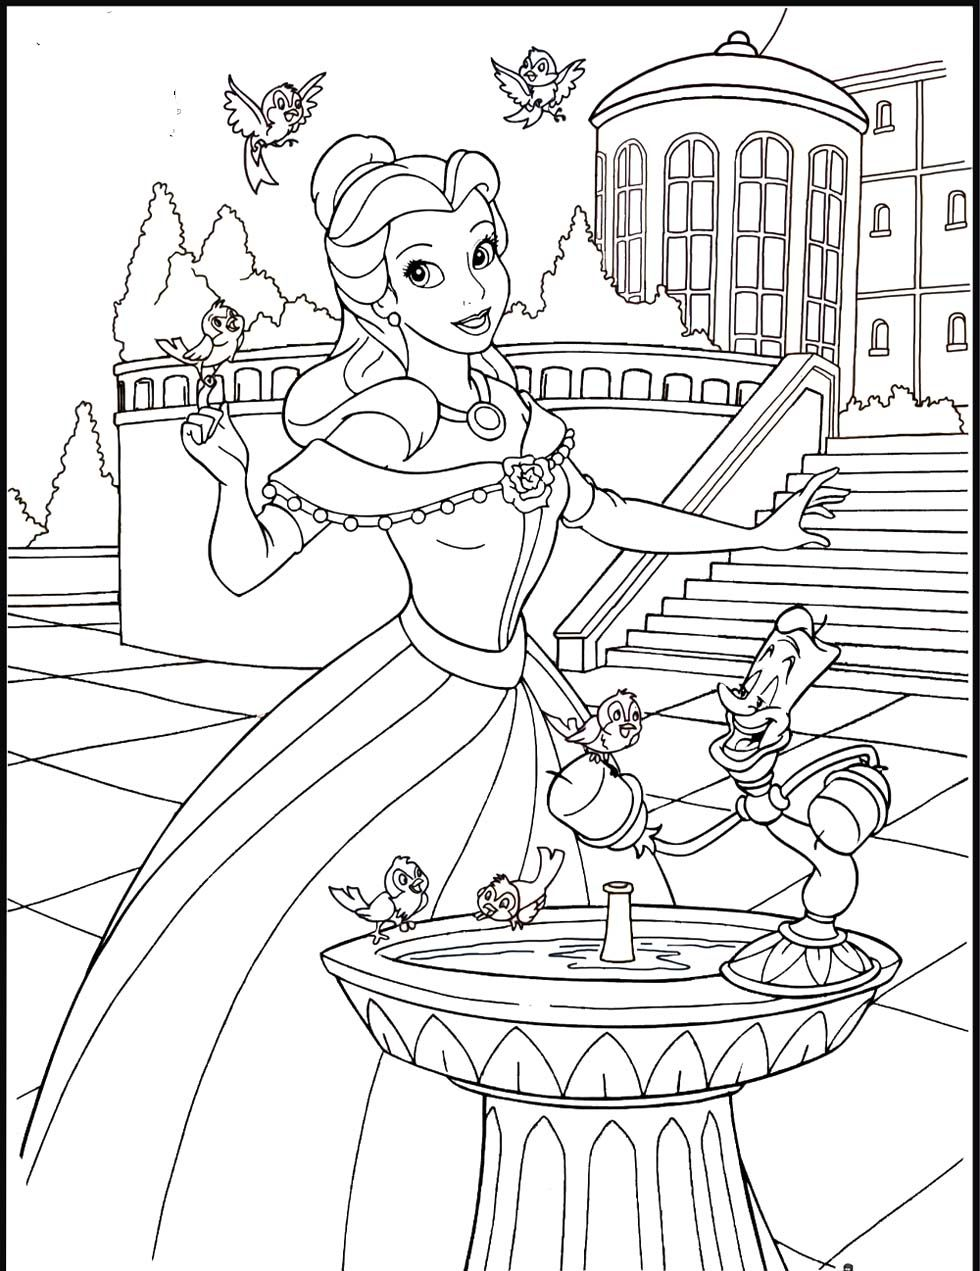 Disney princess birthday coloring pages - Pictures Princess Belle In The Castle Coloring Pages